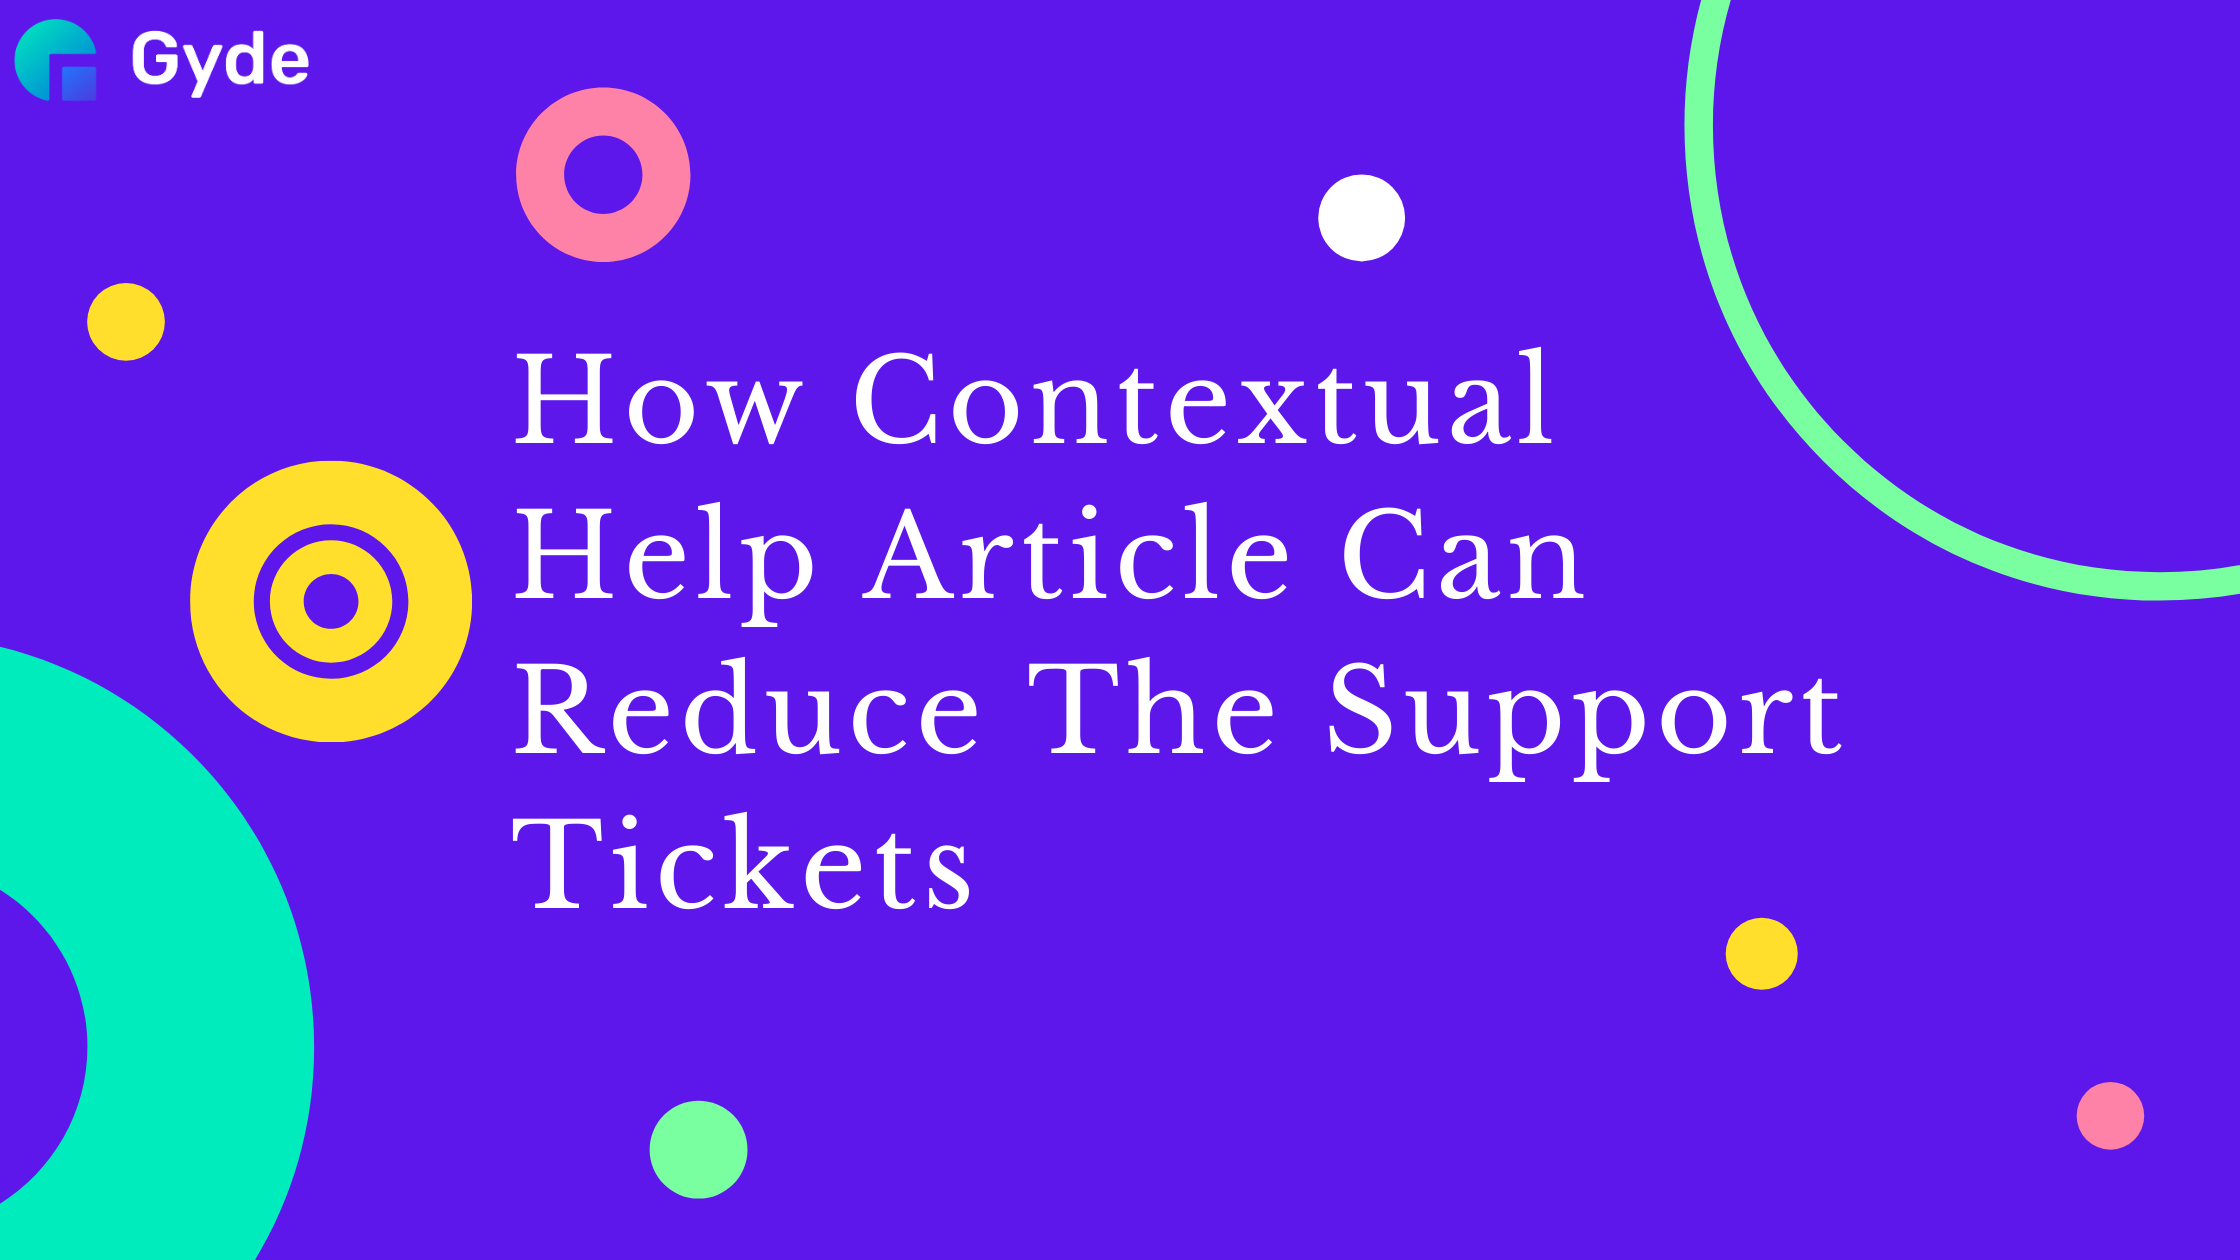 How Contextual Help Articles Can Reduce The Support Tickets